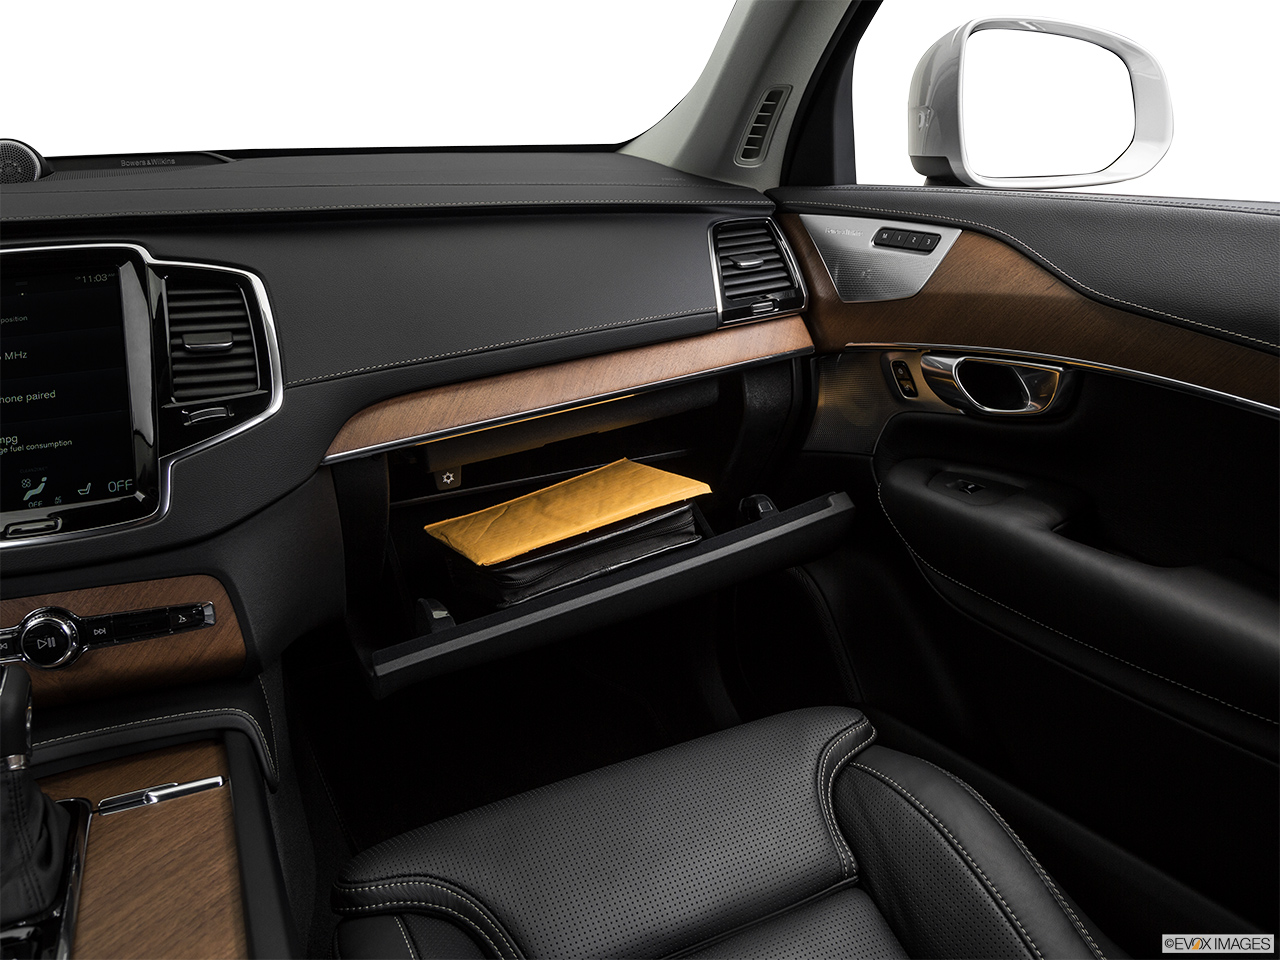 2019 Volvo XC90  T6 Inscription Glove box open.